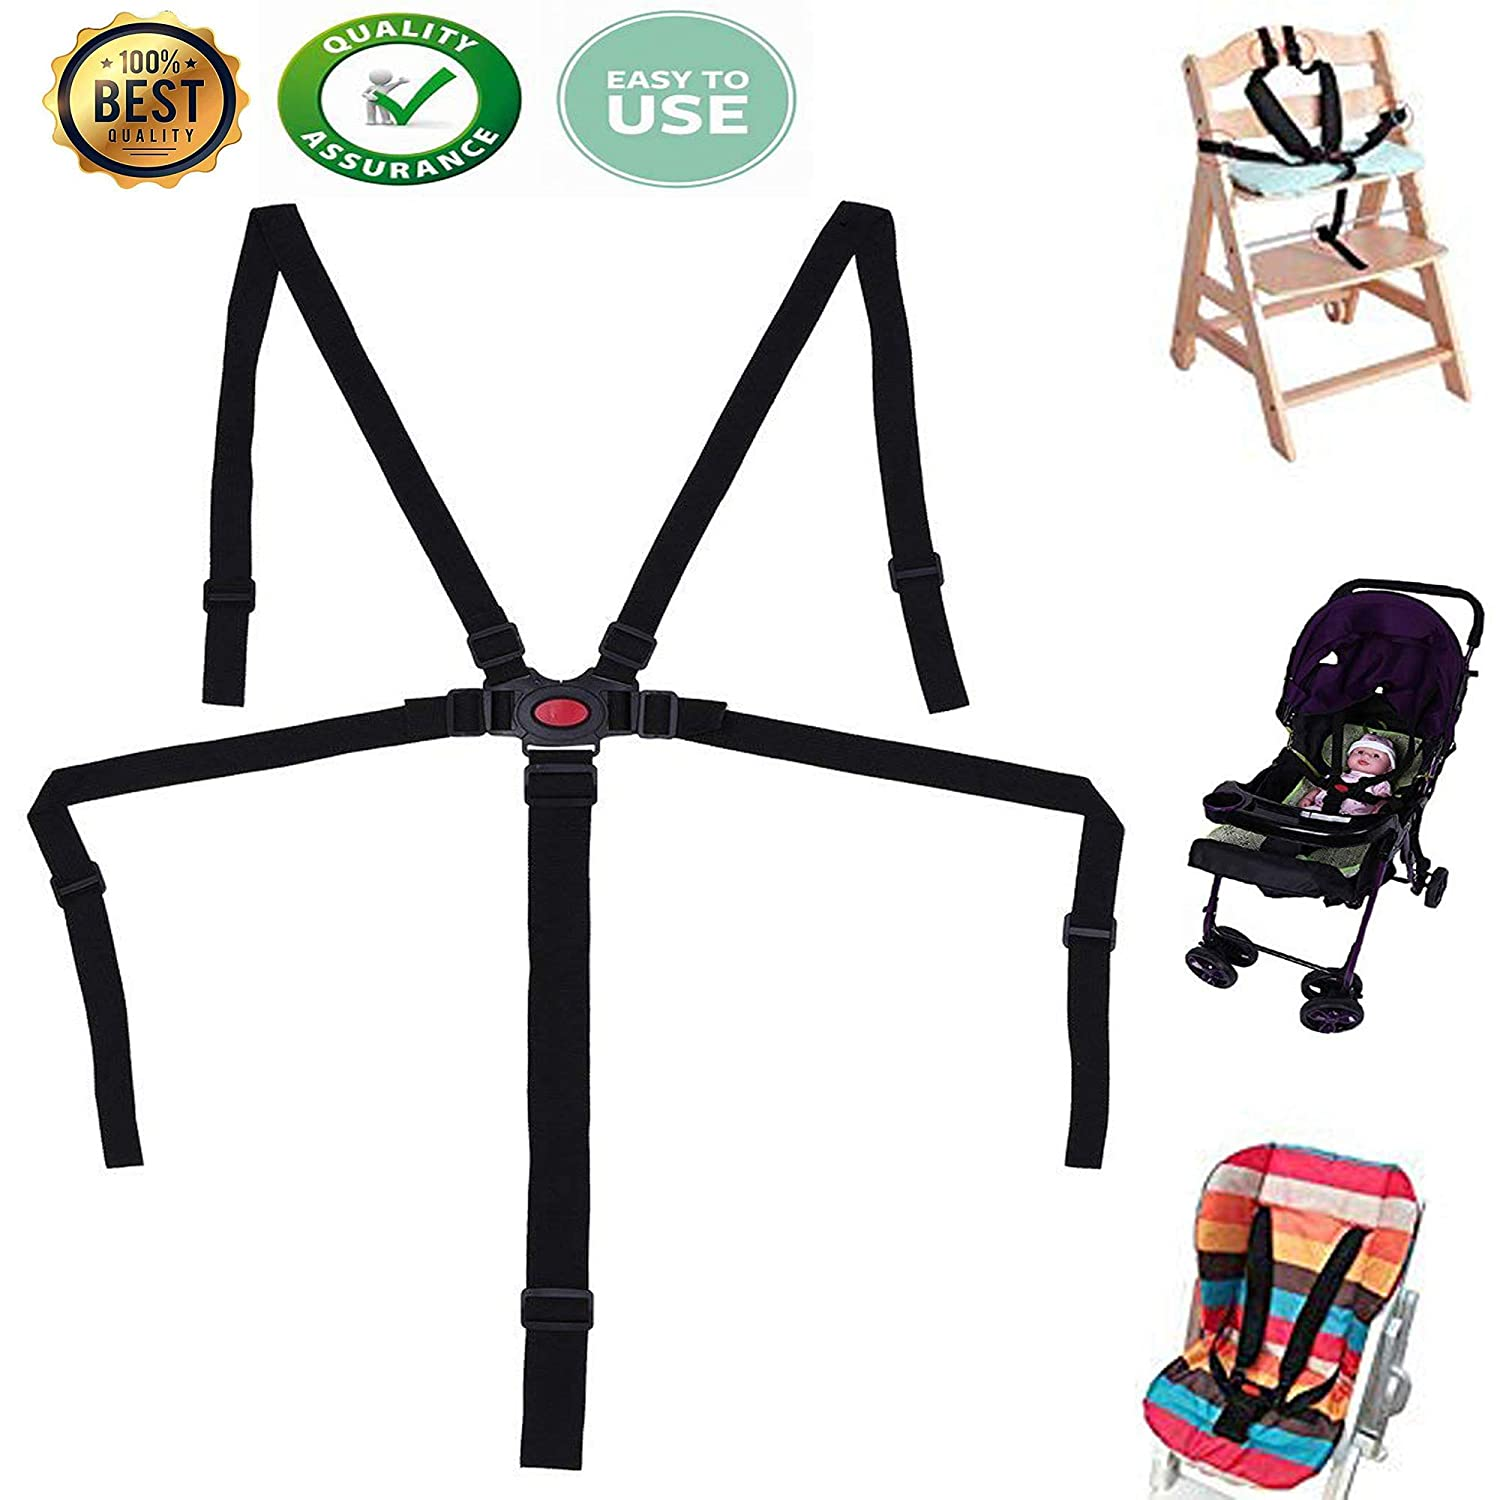 High Chair Straps, Baby Kid 5 Point Harness, Harness for High Chair, High Chair Harness,Universal Baby Safe Belt Holder replacement for Stroller Wooden High Chair Pram Buggy Children Kid Pushchair Guang-T